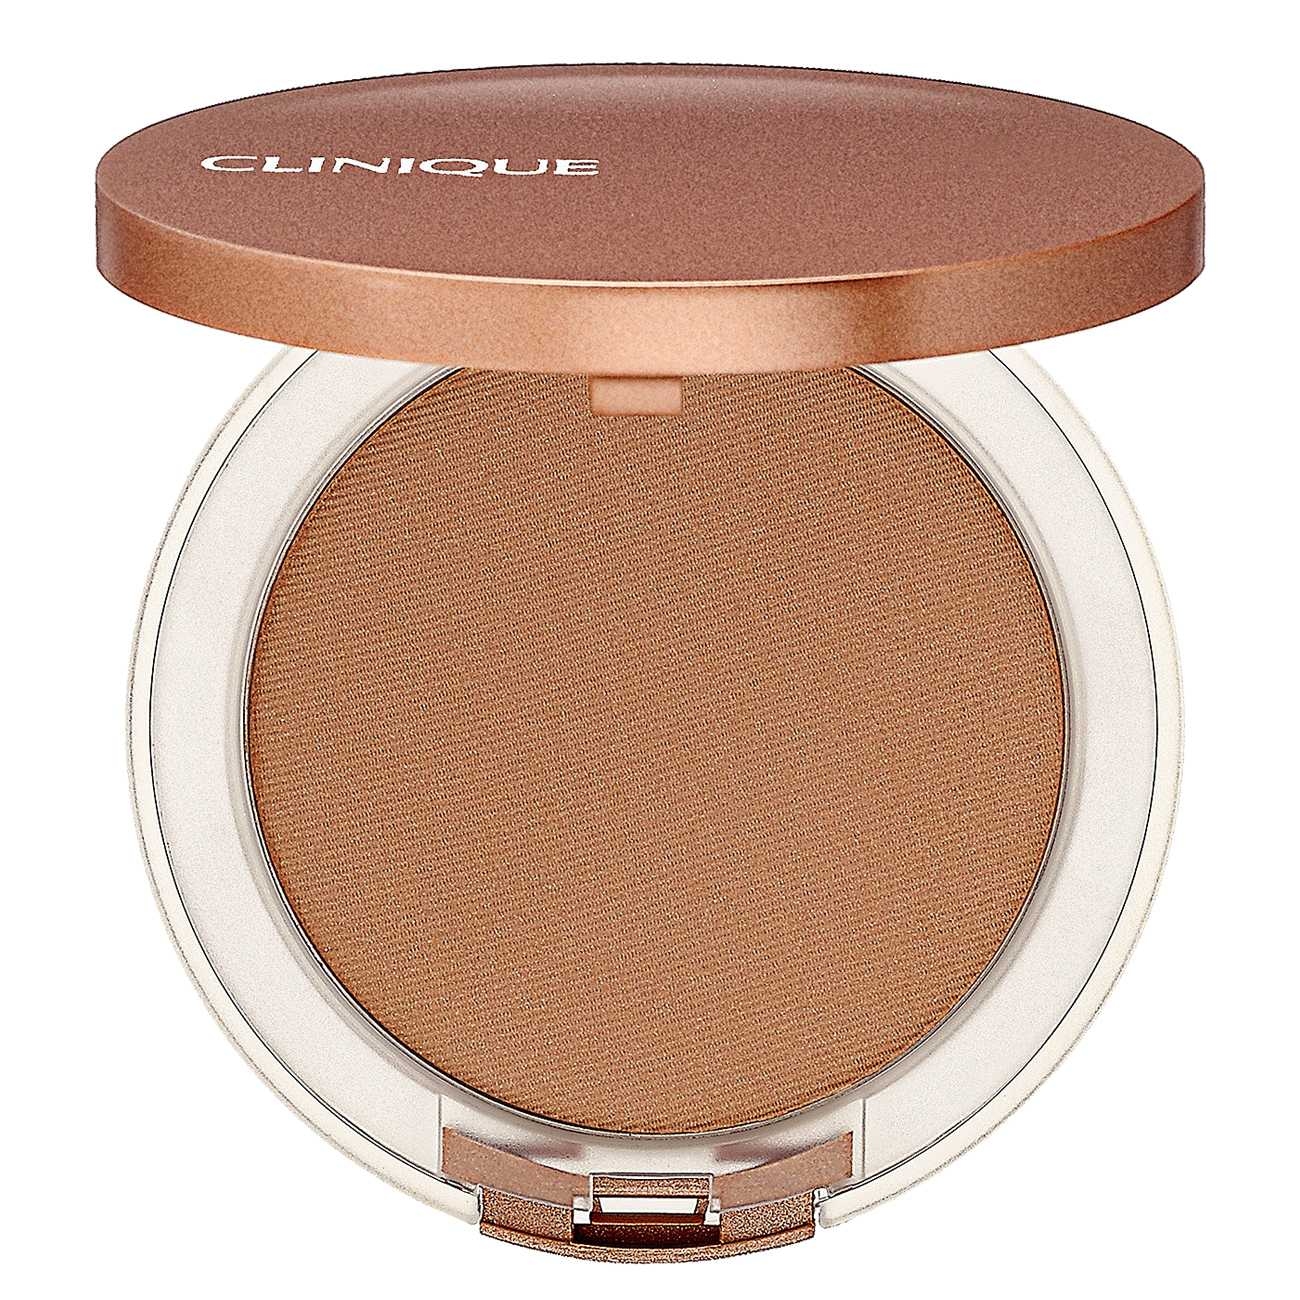 TRUE BRONZE PRESSED POWDER BRONZER 9.6 G Sunkissed 2